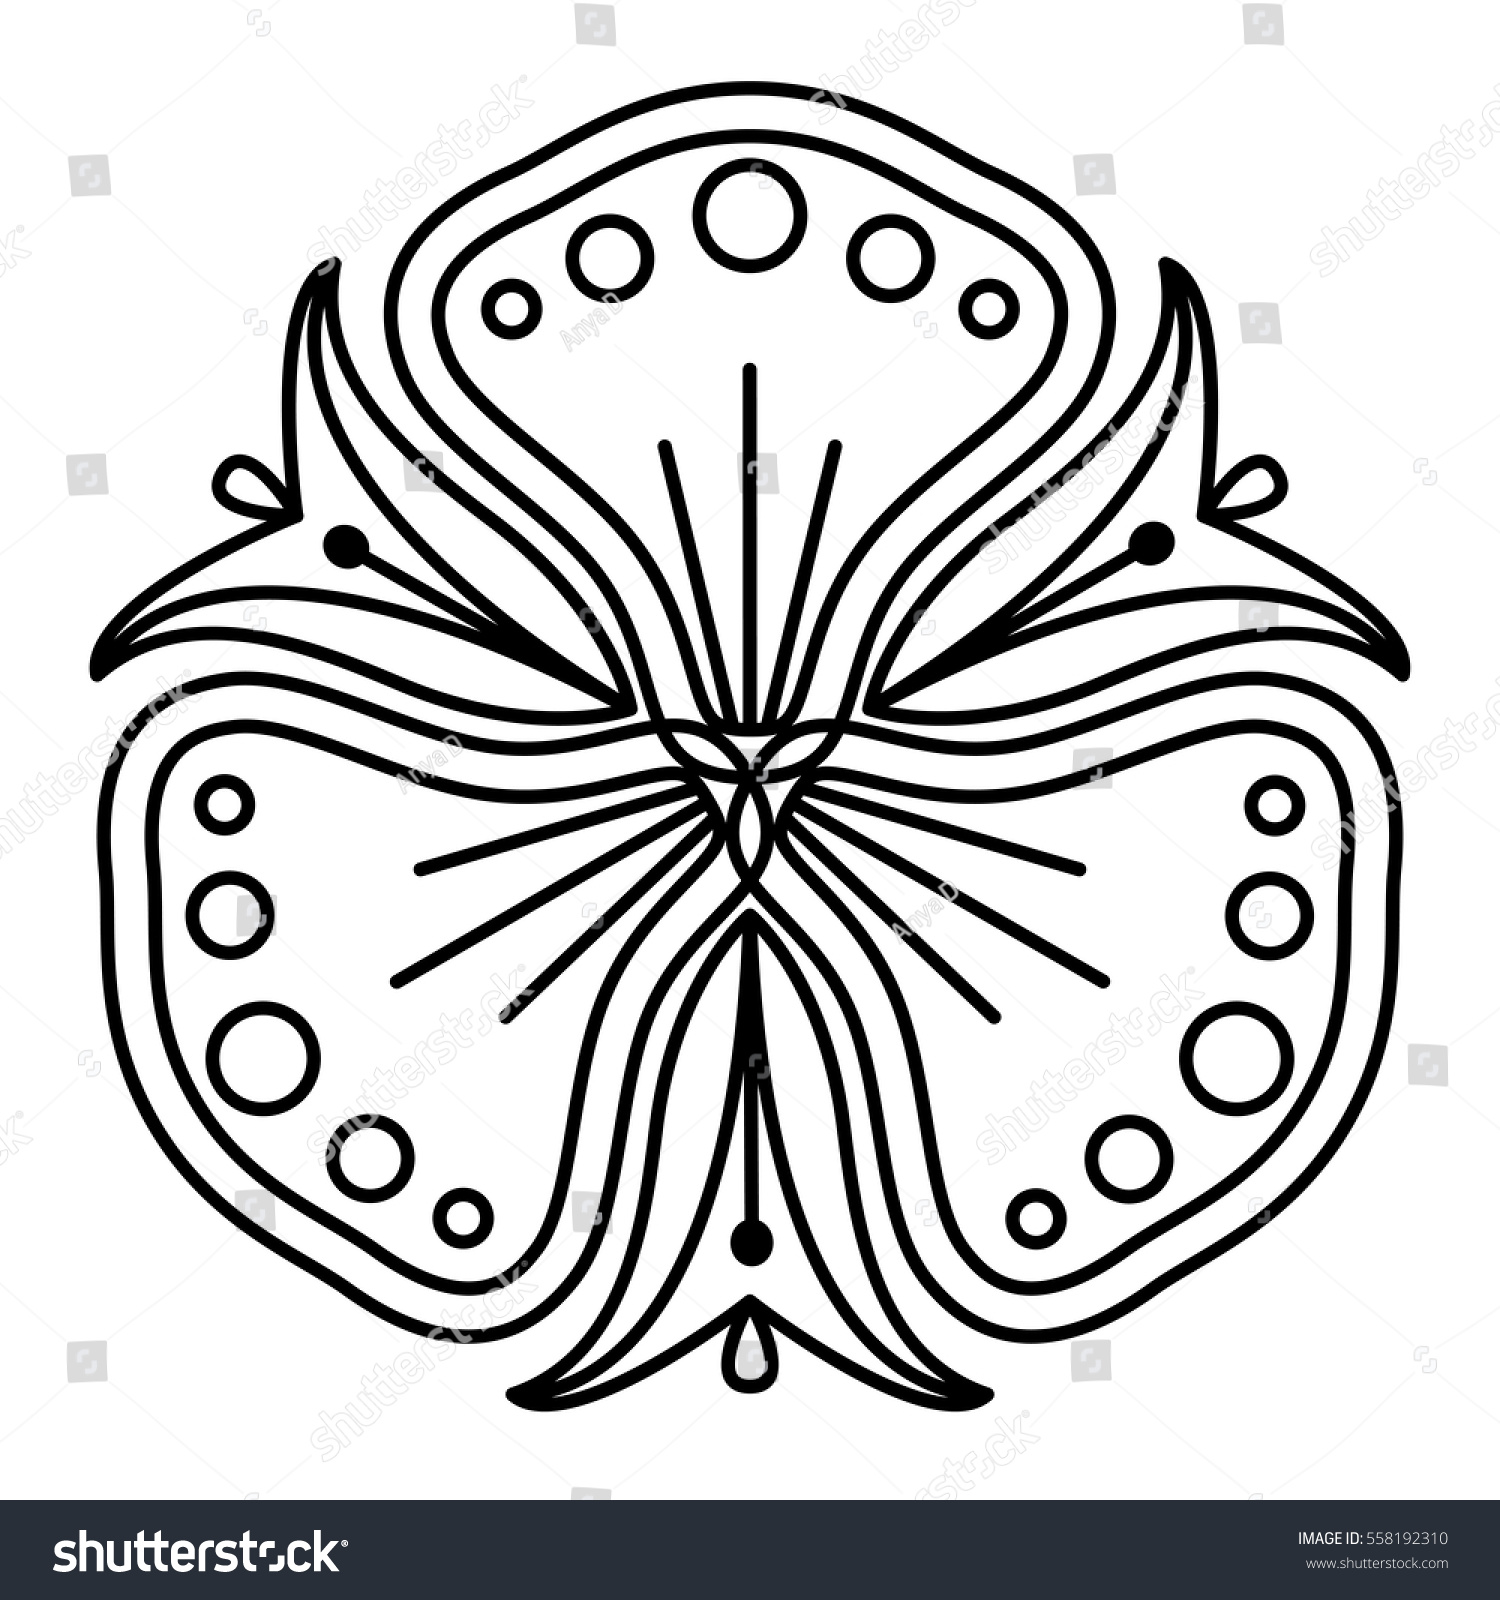 Easy Black And White Flower Pattern Pansy Like Floral Shape For Coloring Book Pages